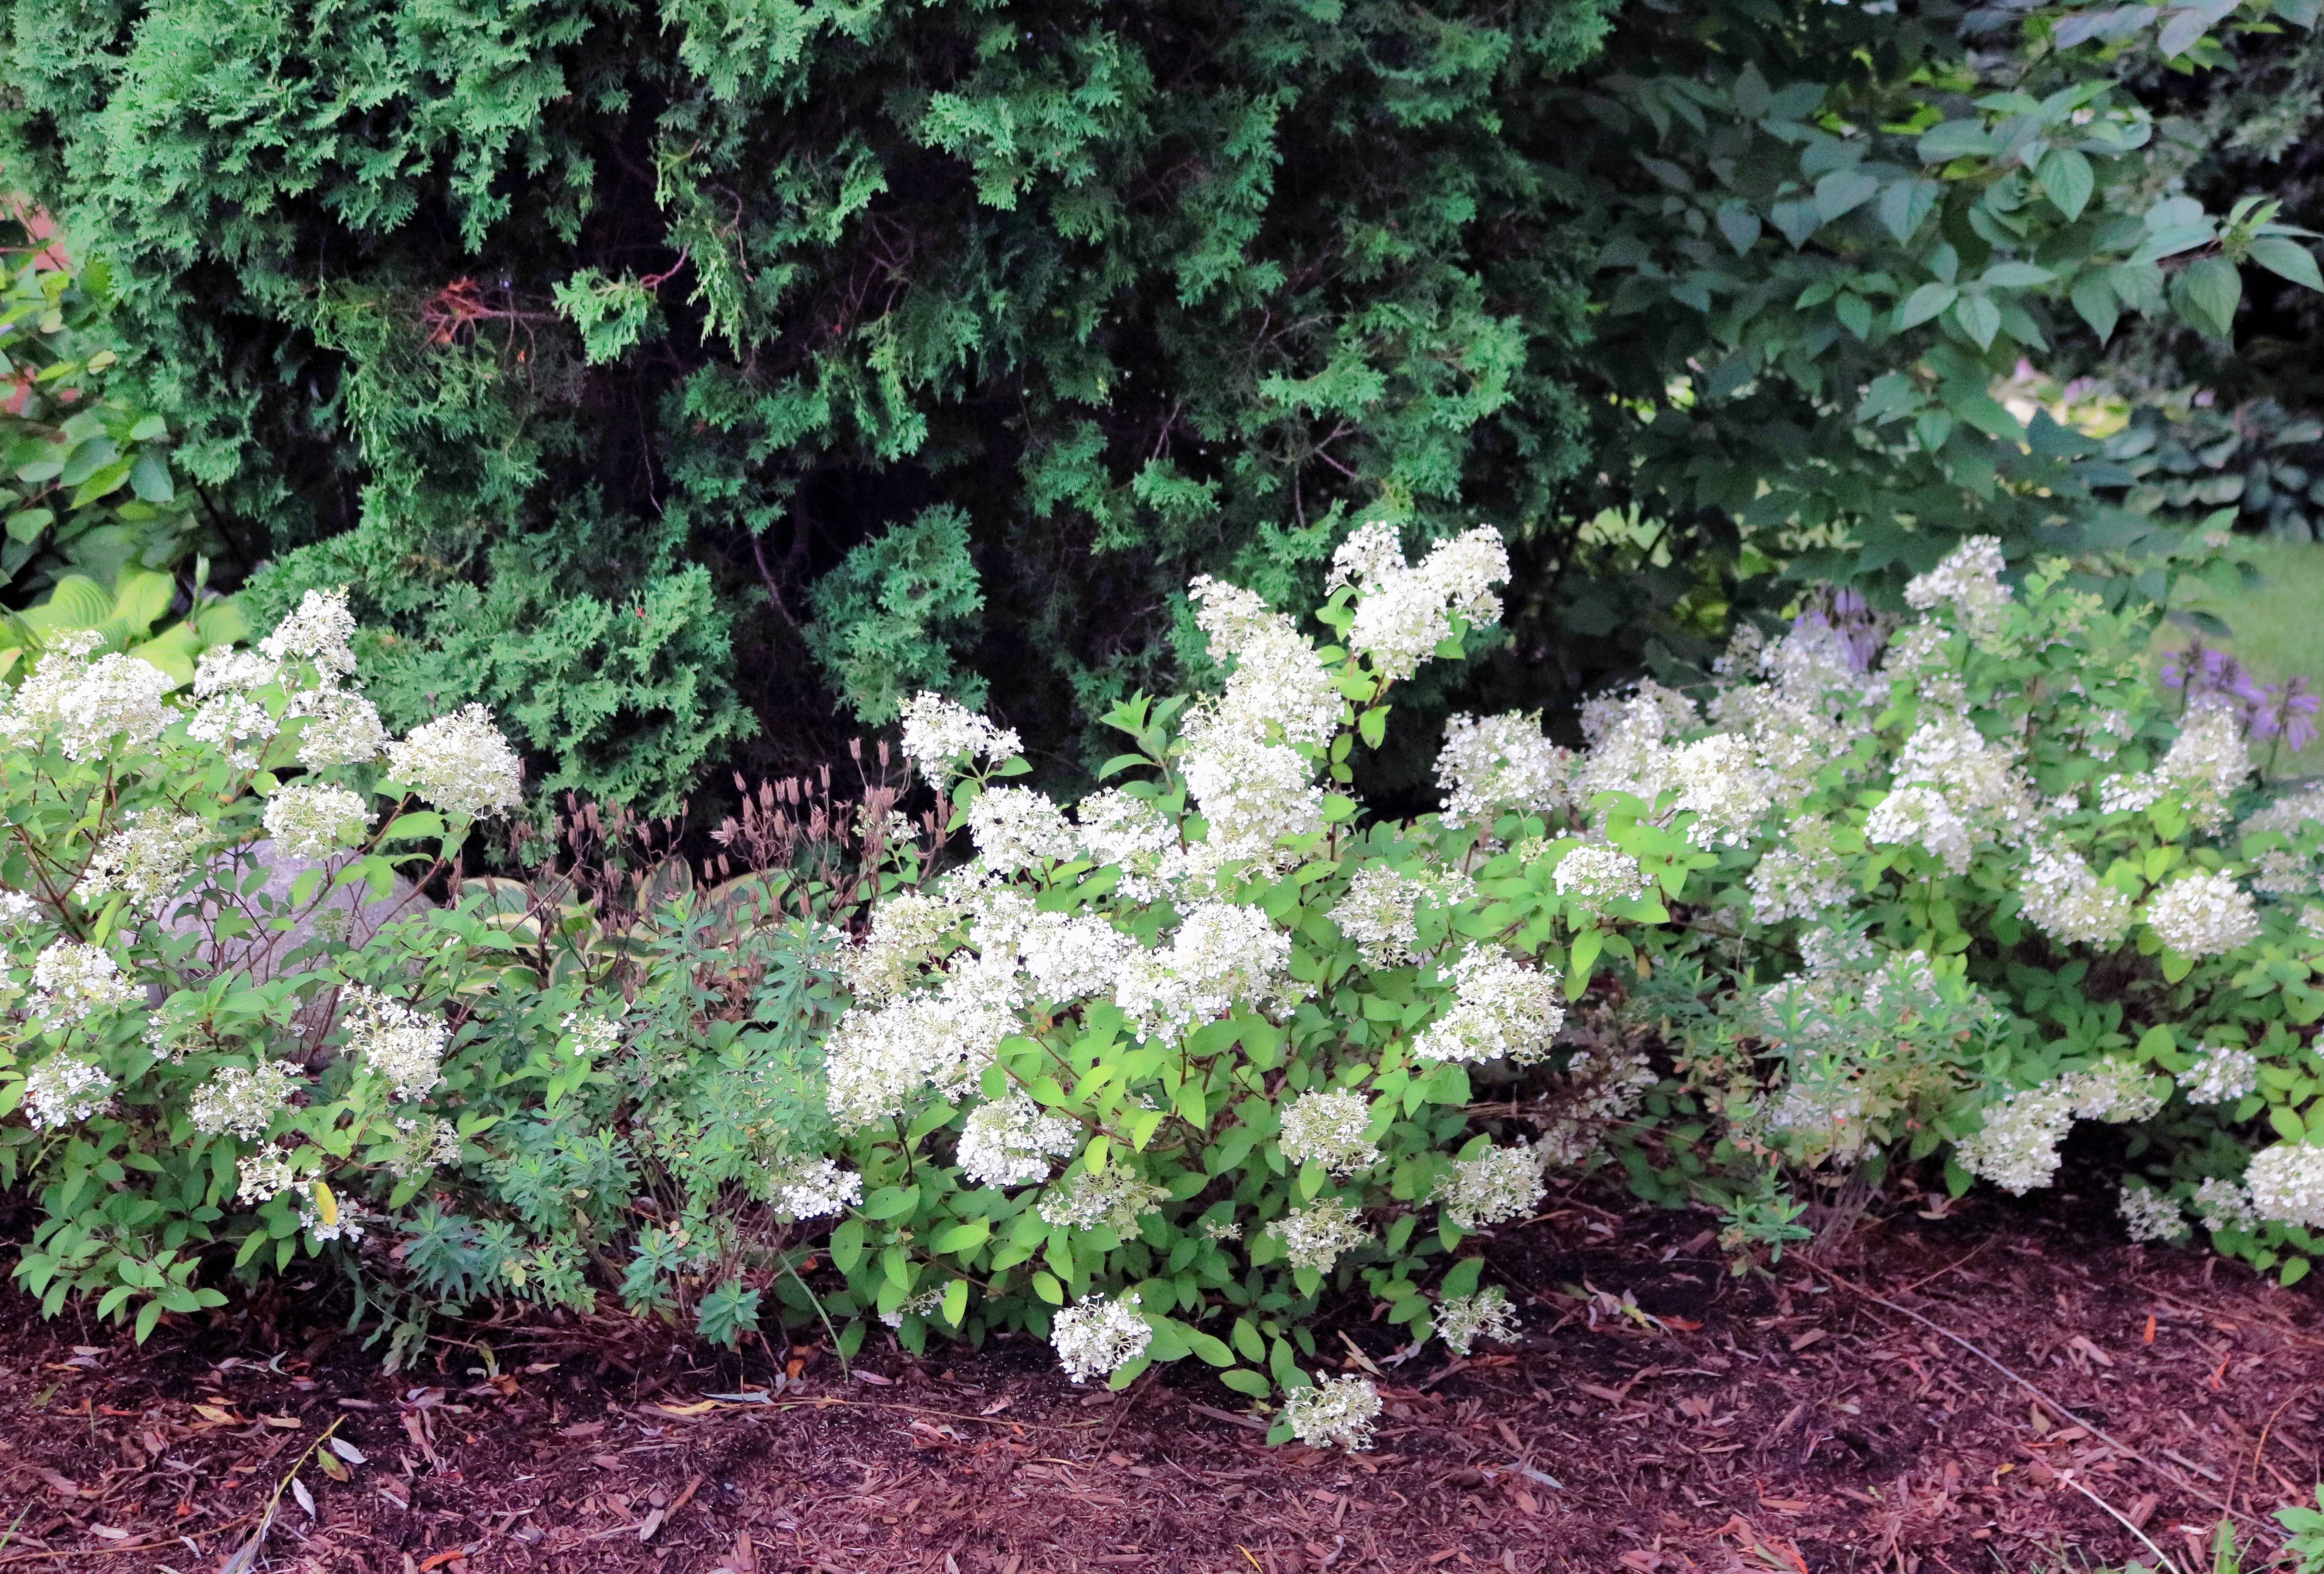 Bobo hydrangeas can be planted in place of day lilies, which require constant deadheading.